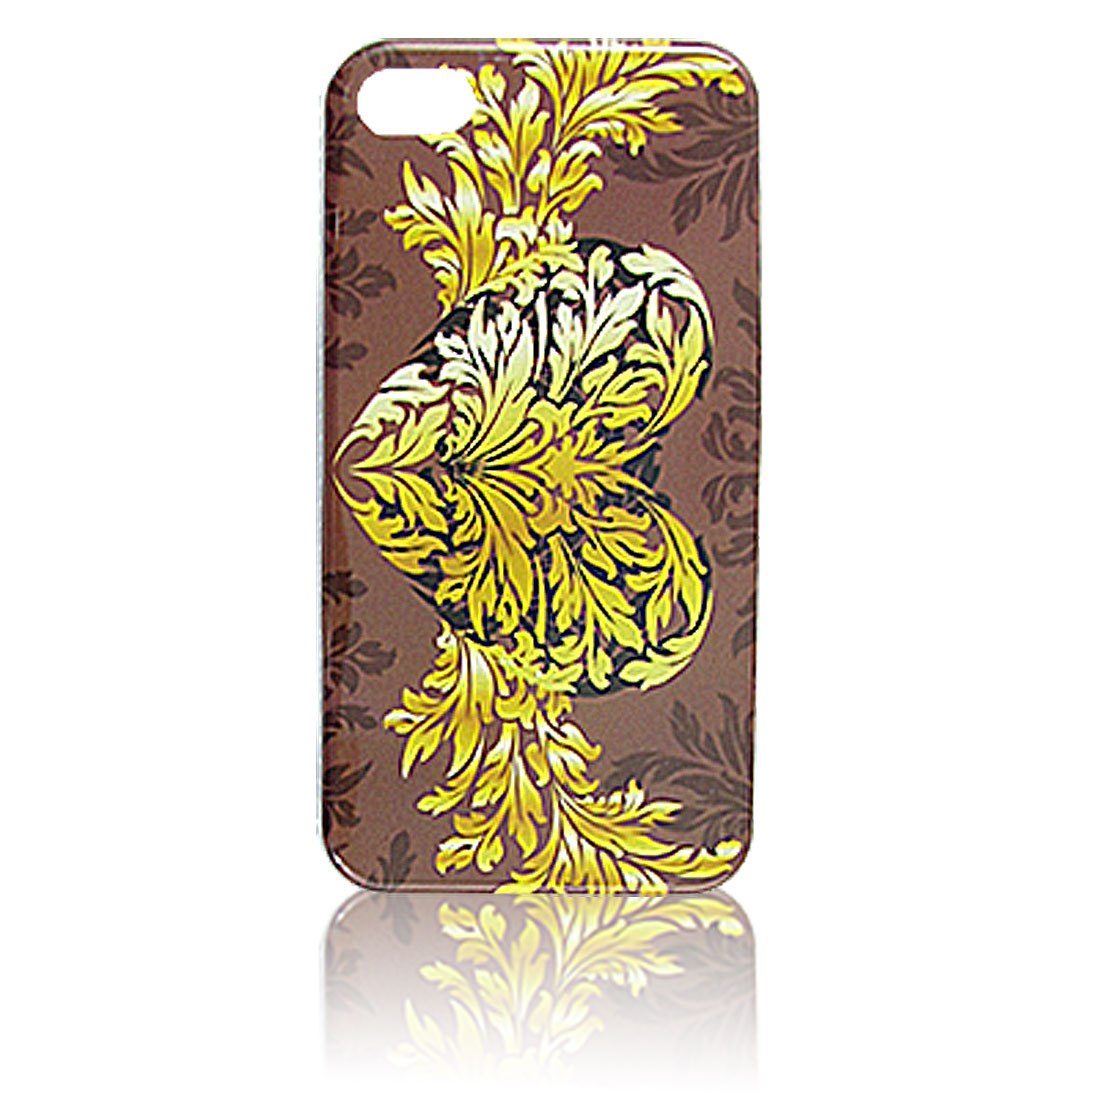 Yellow Leaves Heart Pattern Hard Plastic IMD Back Case for iPhone 4 4G 4S